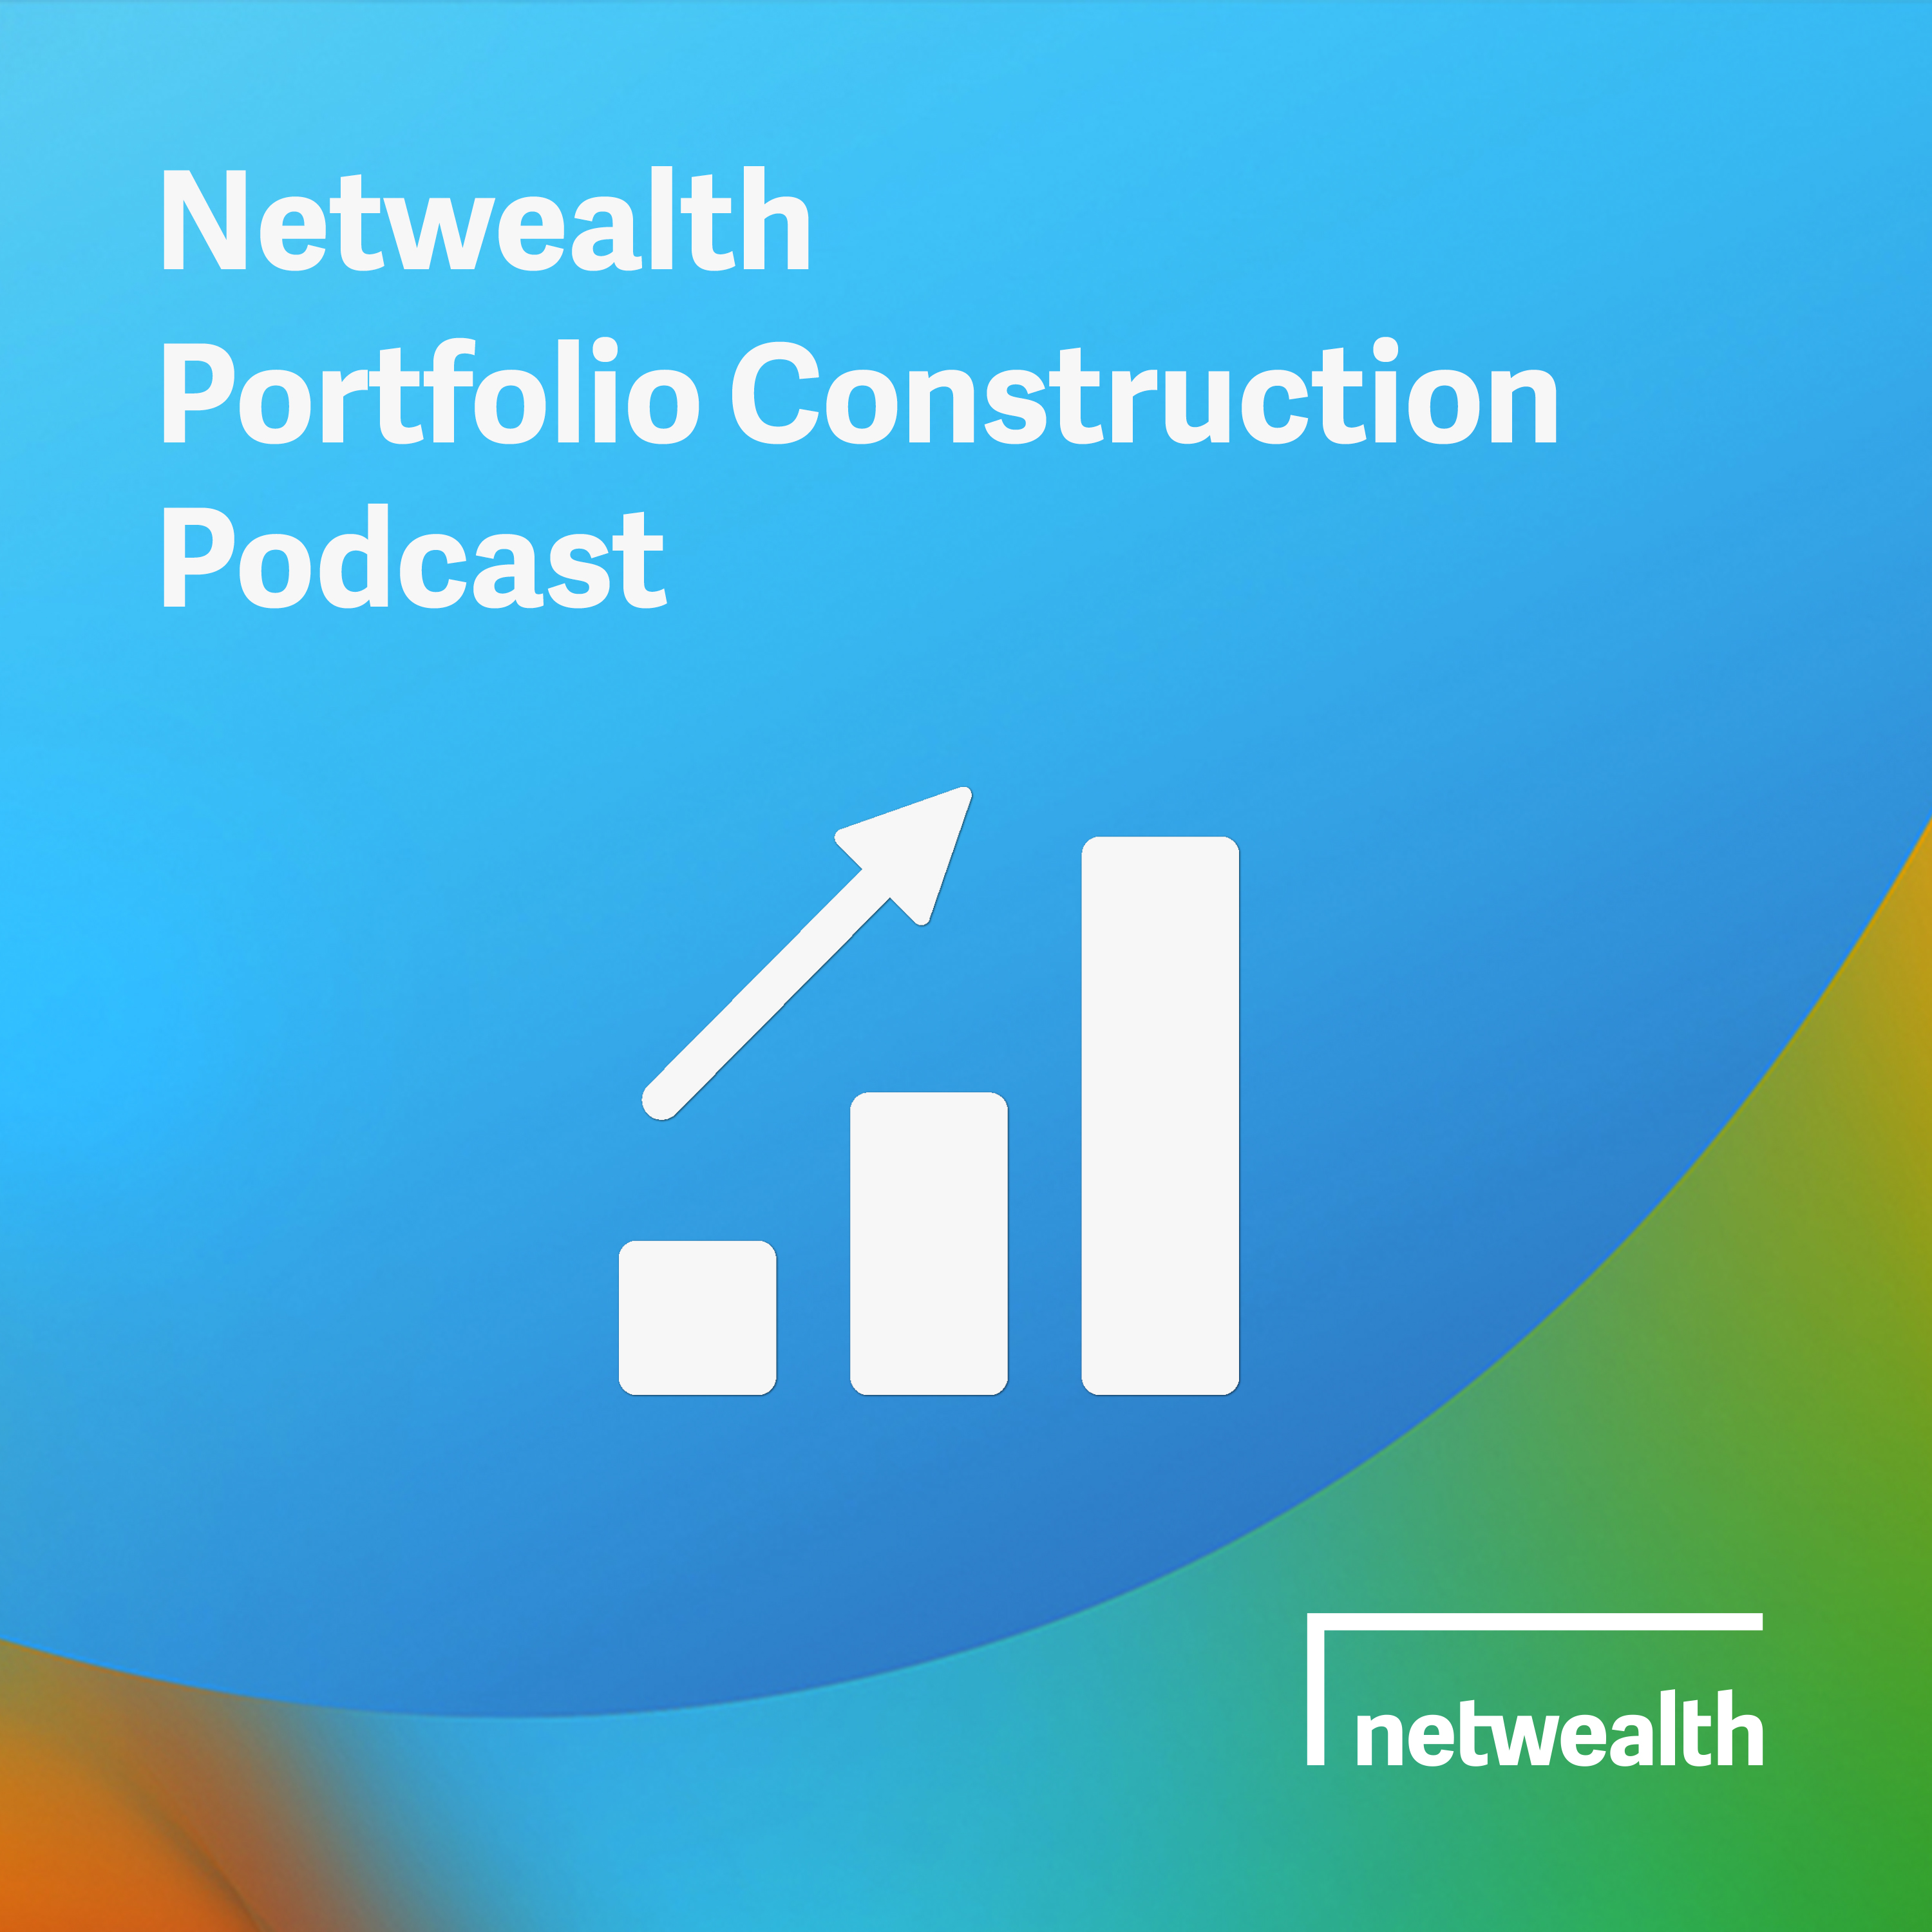 The Netwealth Portfolio Construction Podcast